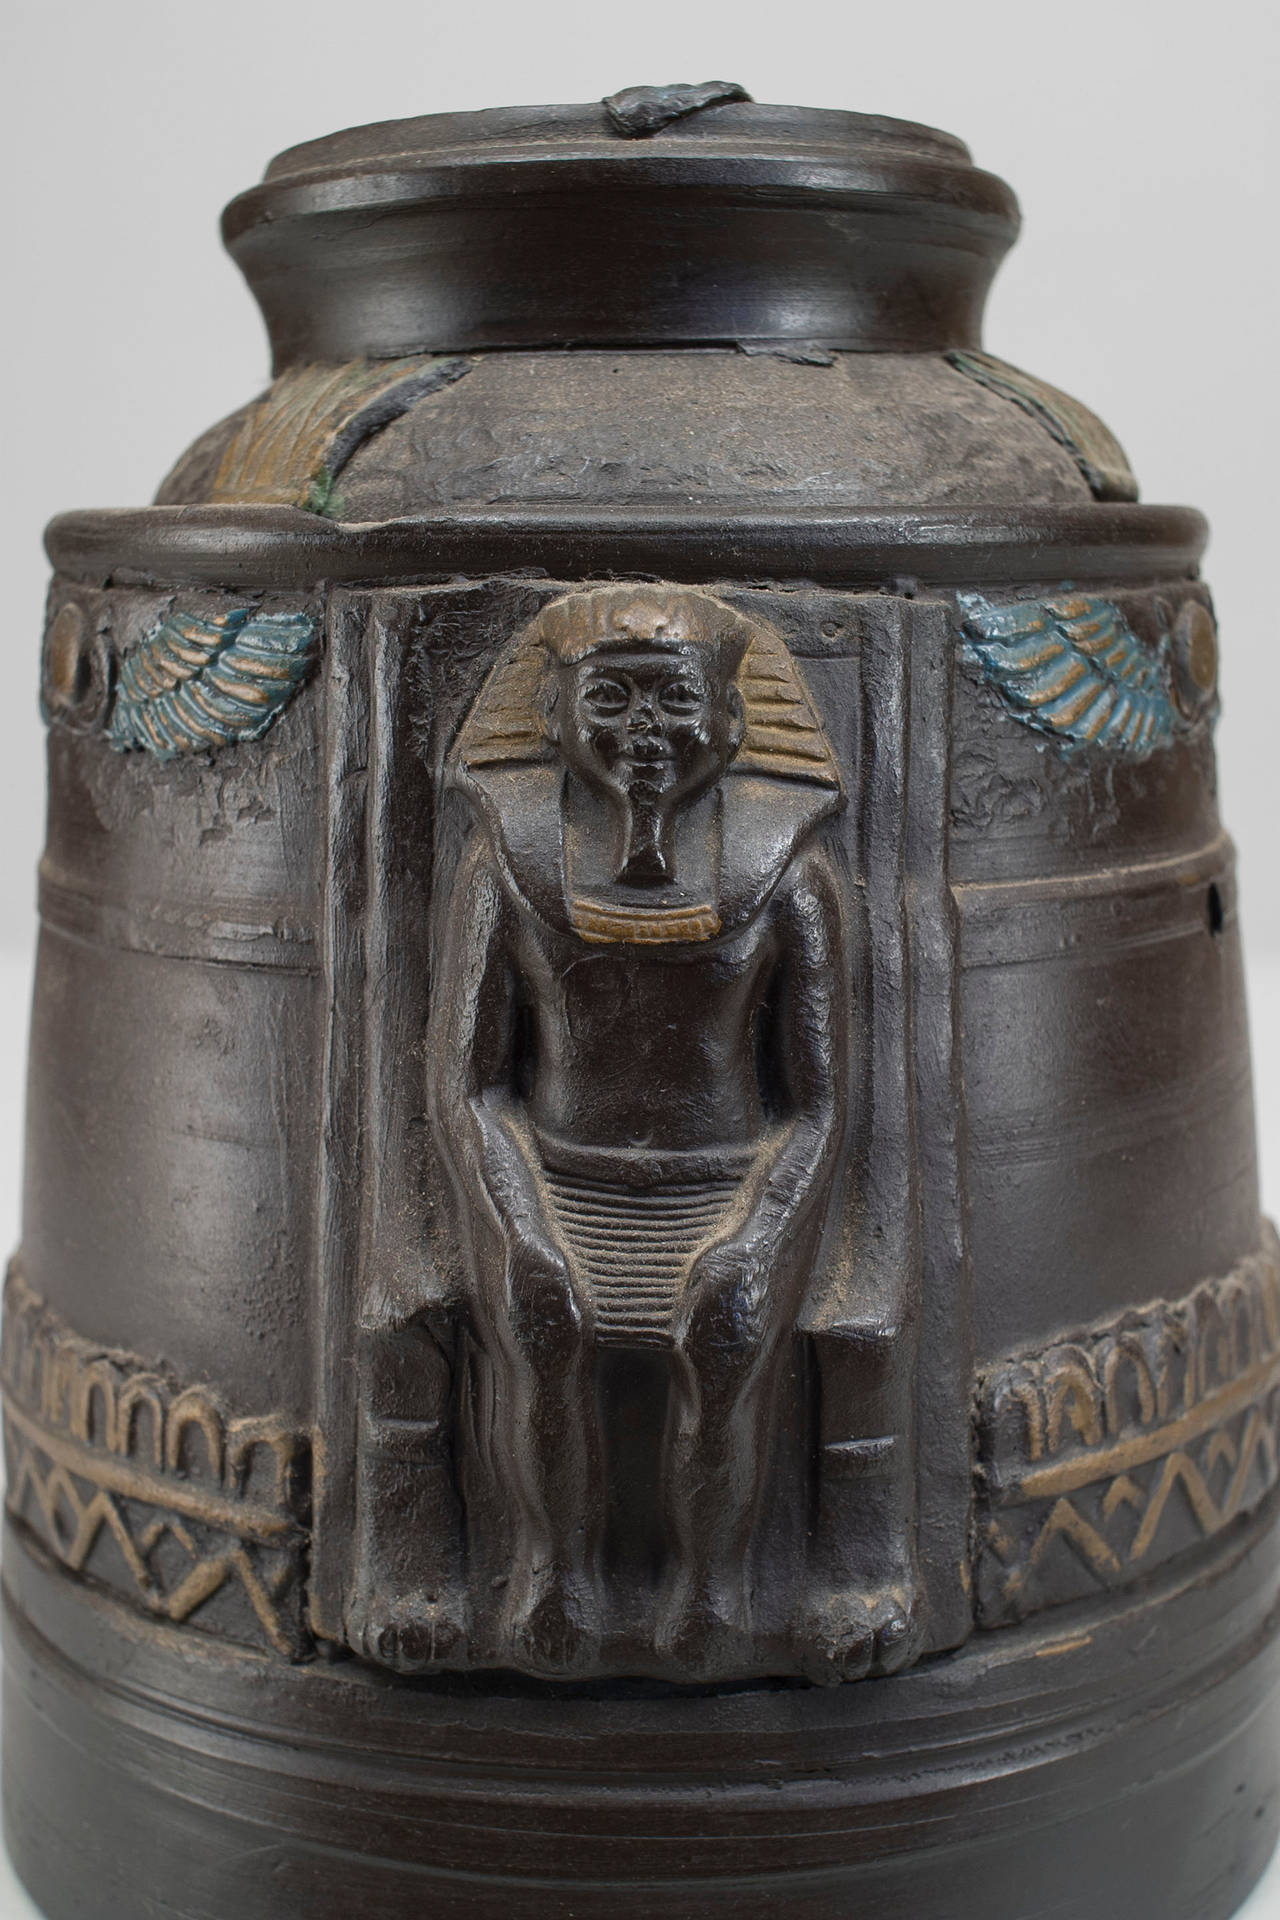 1920s Japanese Egyptian Revival Tobacco Jar For Sale 1